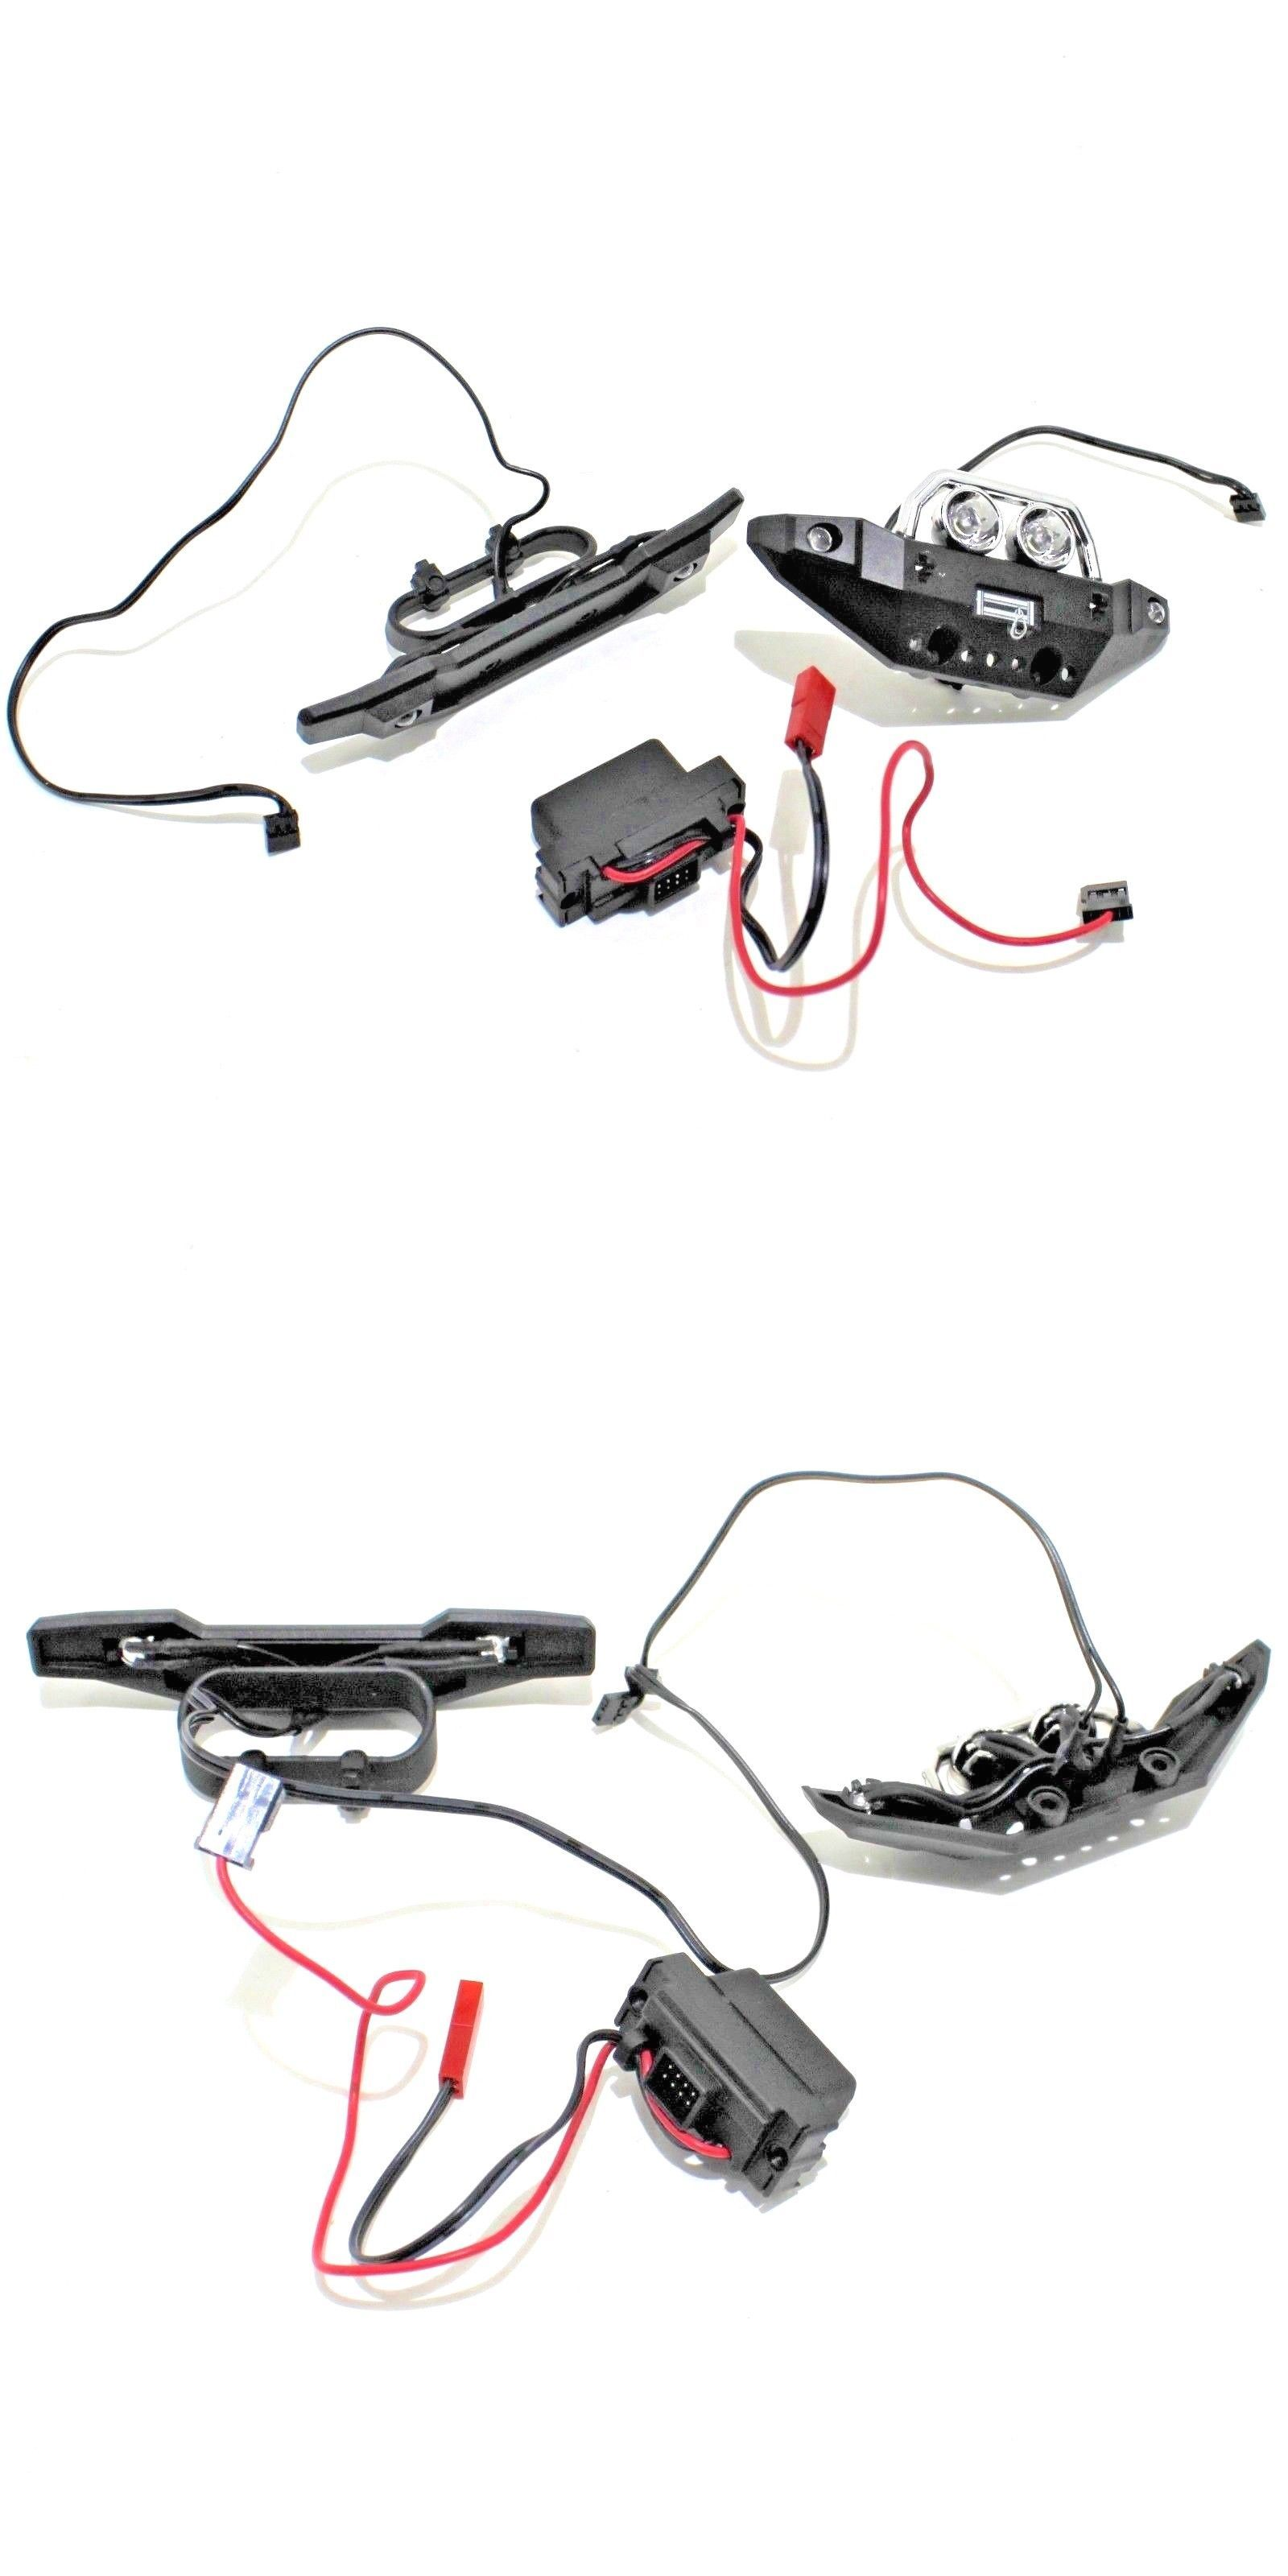 Lighting and Lamps 182177: Traxxas Summit 1 16 Front Rear Bumpers Led Lights  Wire Harness Mounts Wiring Box -> BUY IT NOW ONLY: $26.99 on eBay!